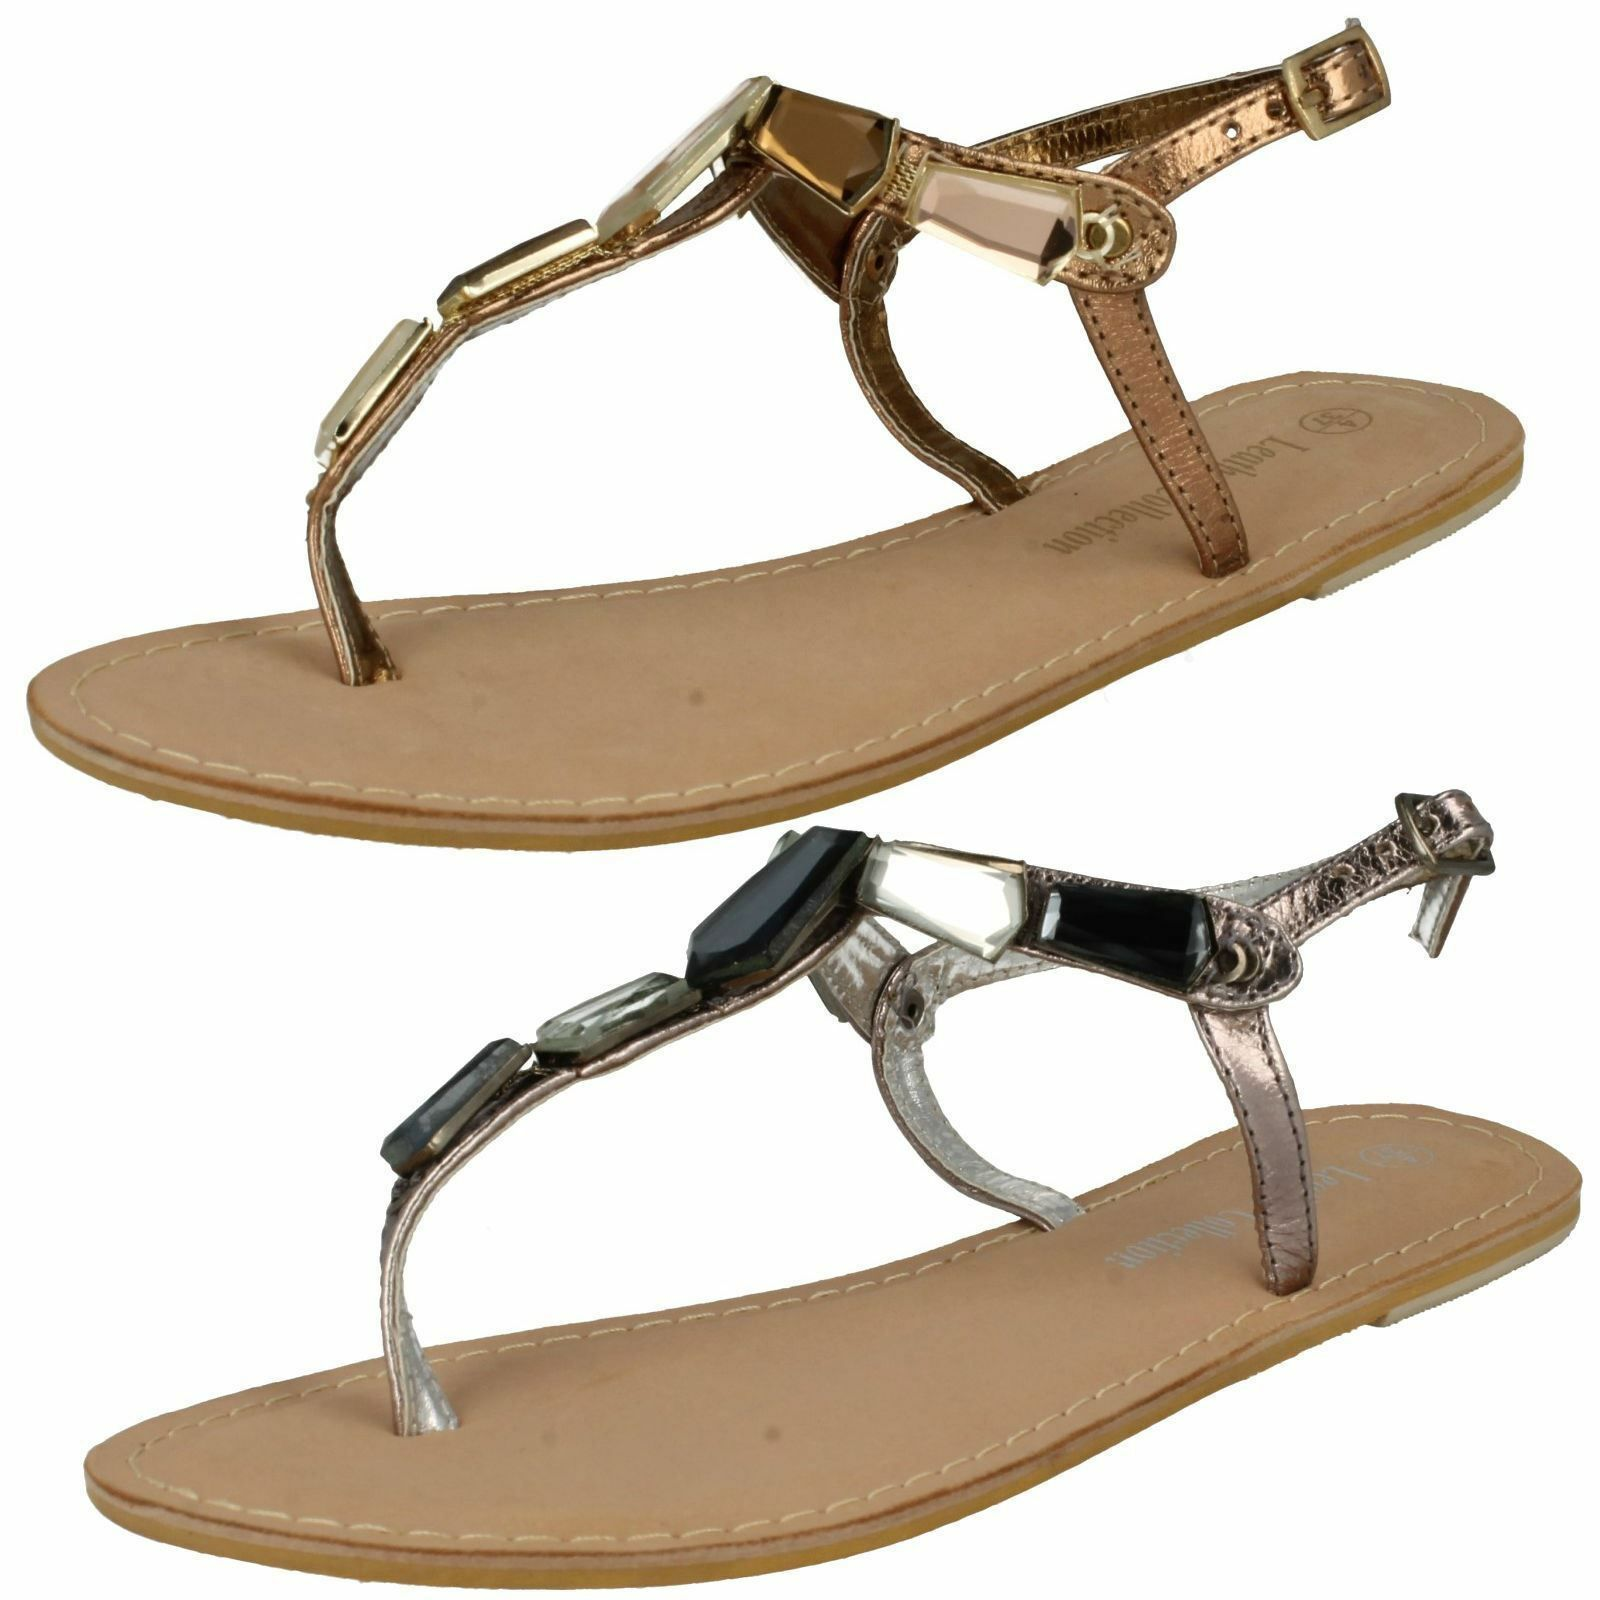 Ladies F0897 price Leather Collection sandals Retail price F0897 f0870f